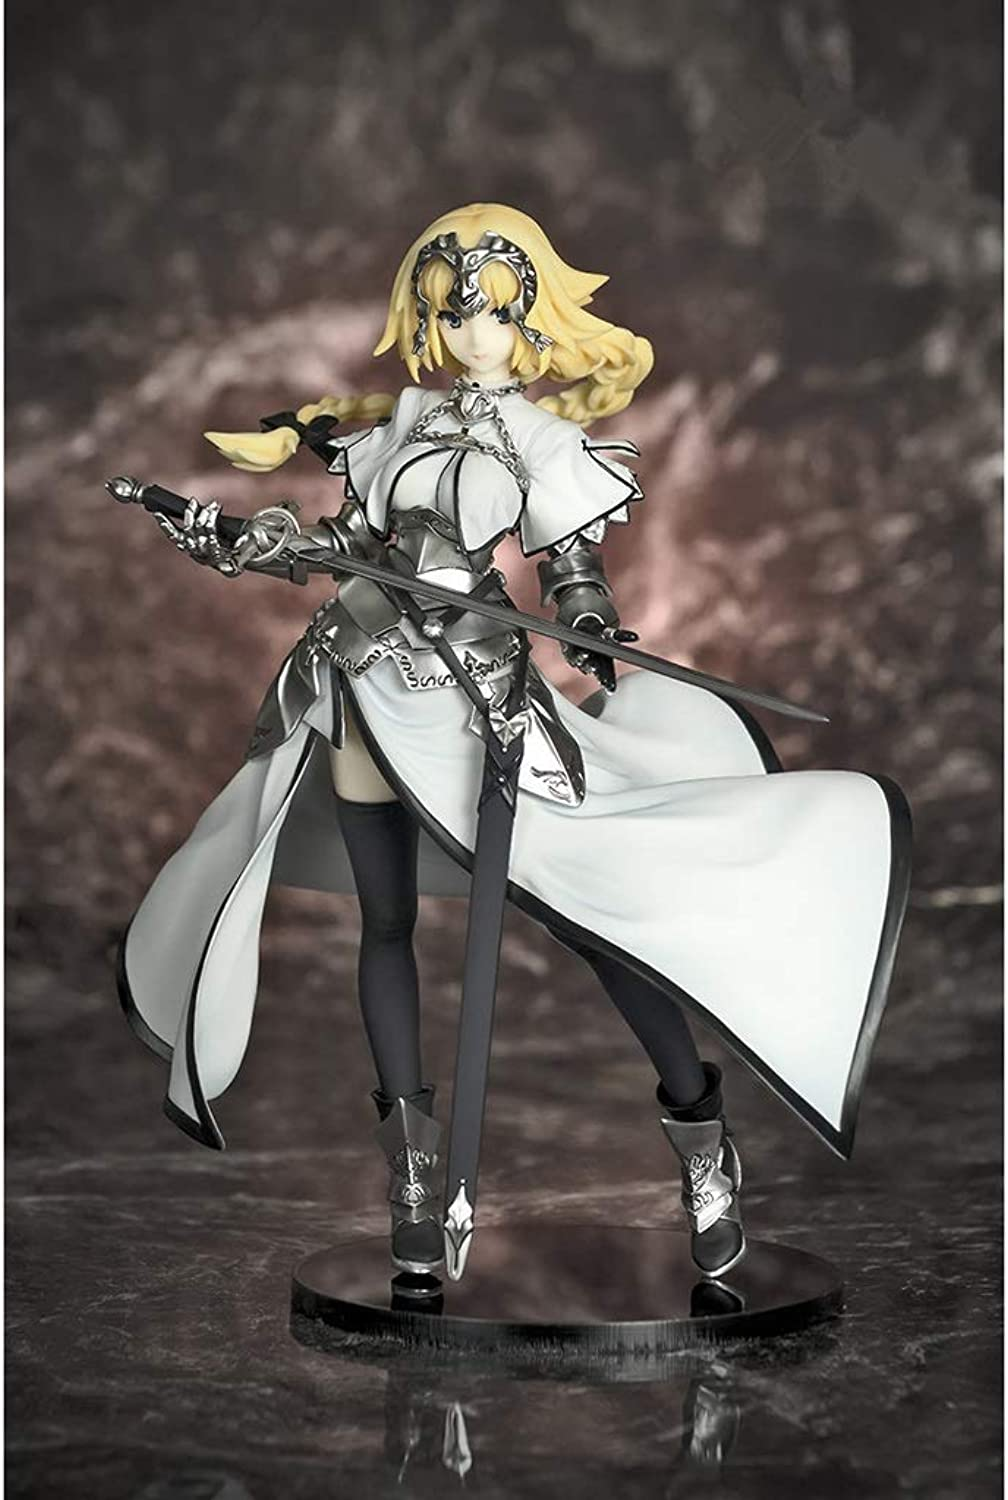 Siyushop Fate Grand Order Ruler Jeanne D'Arc Action Figure  Highly Detailed Accurate Sculpt  Equipped With Weapons  High 20CM (color   White)